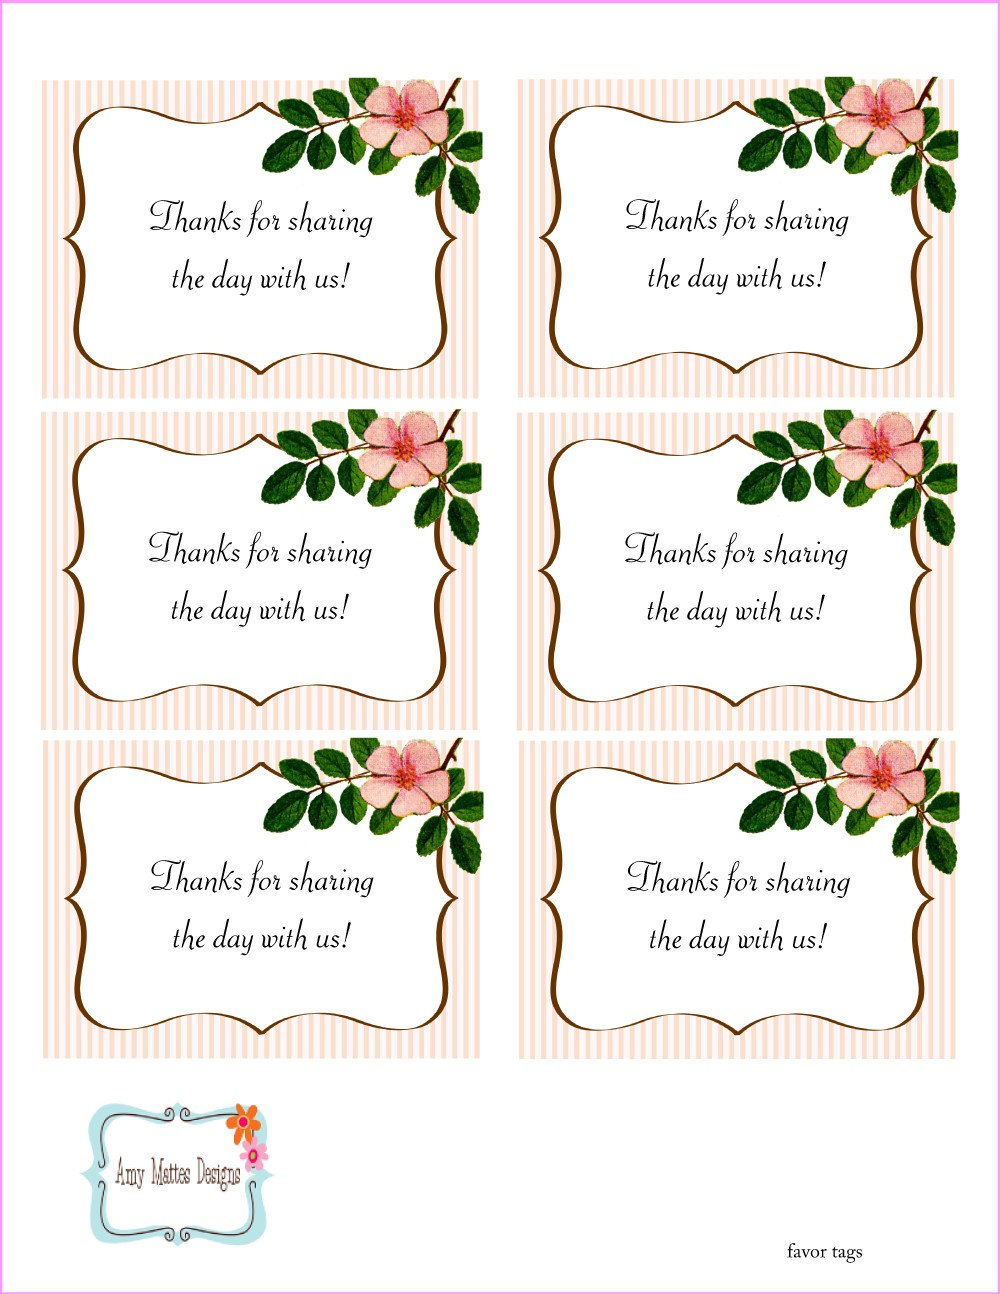 Free Printable Favor Tags Free Mother S Day Printables From Amy Mattes Designs